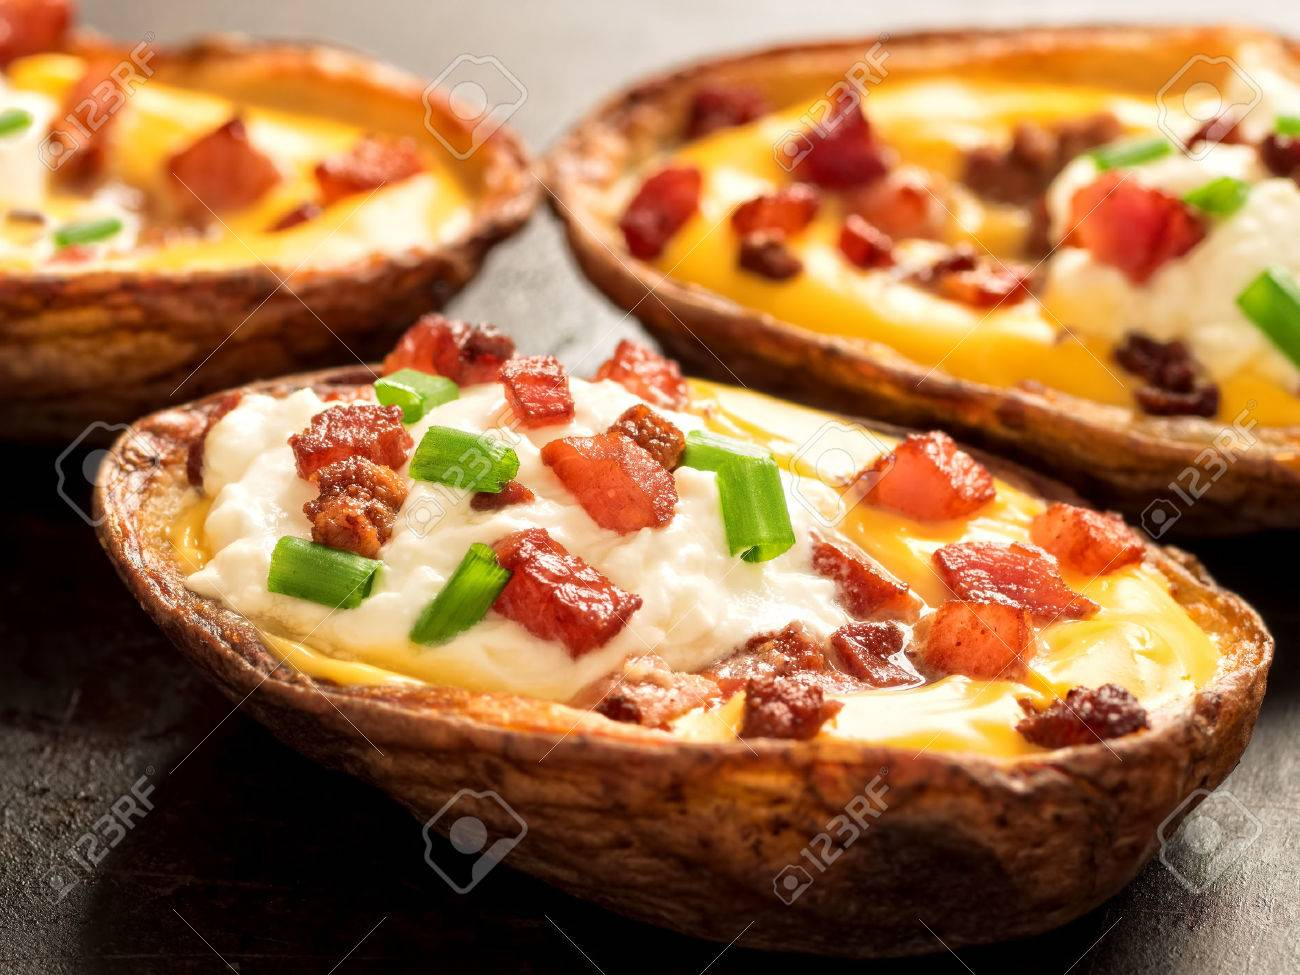 close up of rustic baked potato skin - 39309043